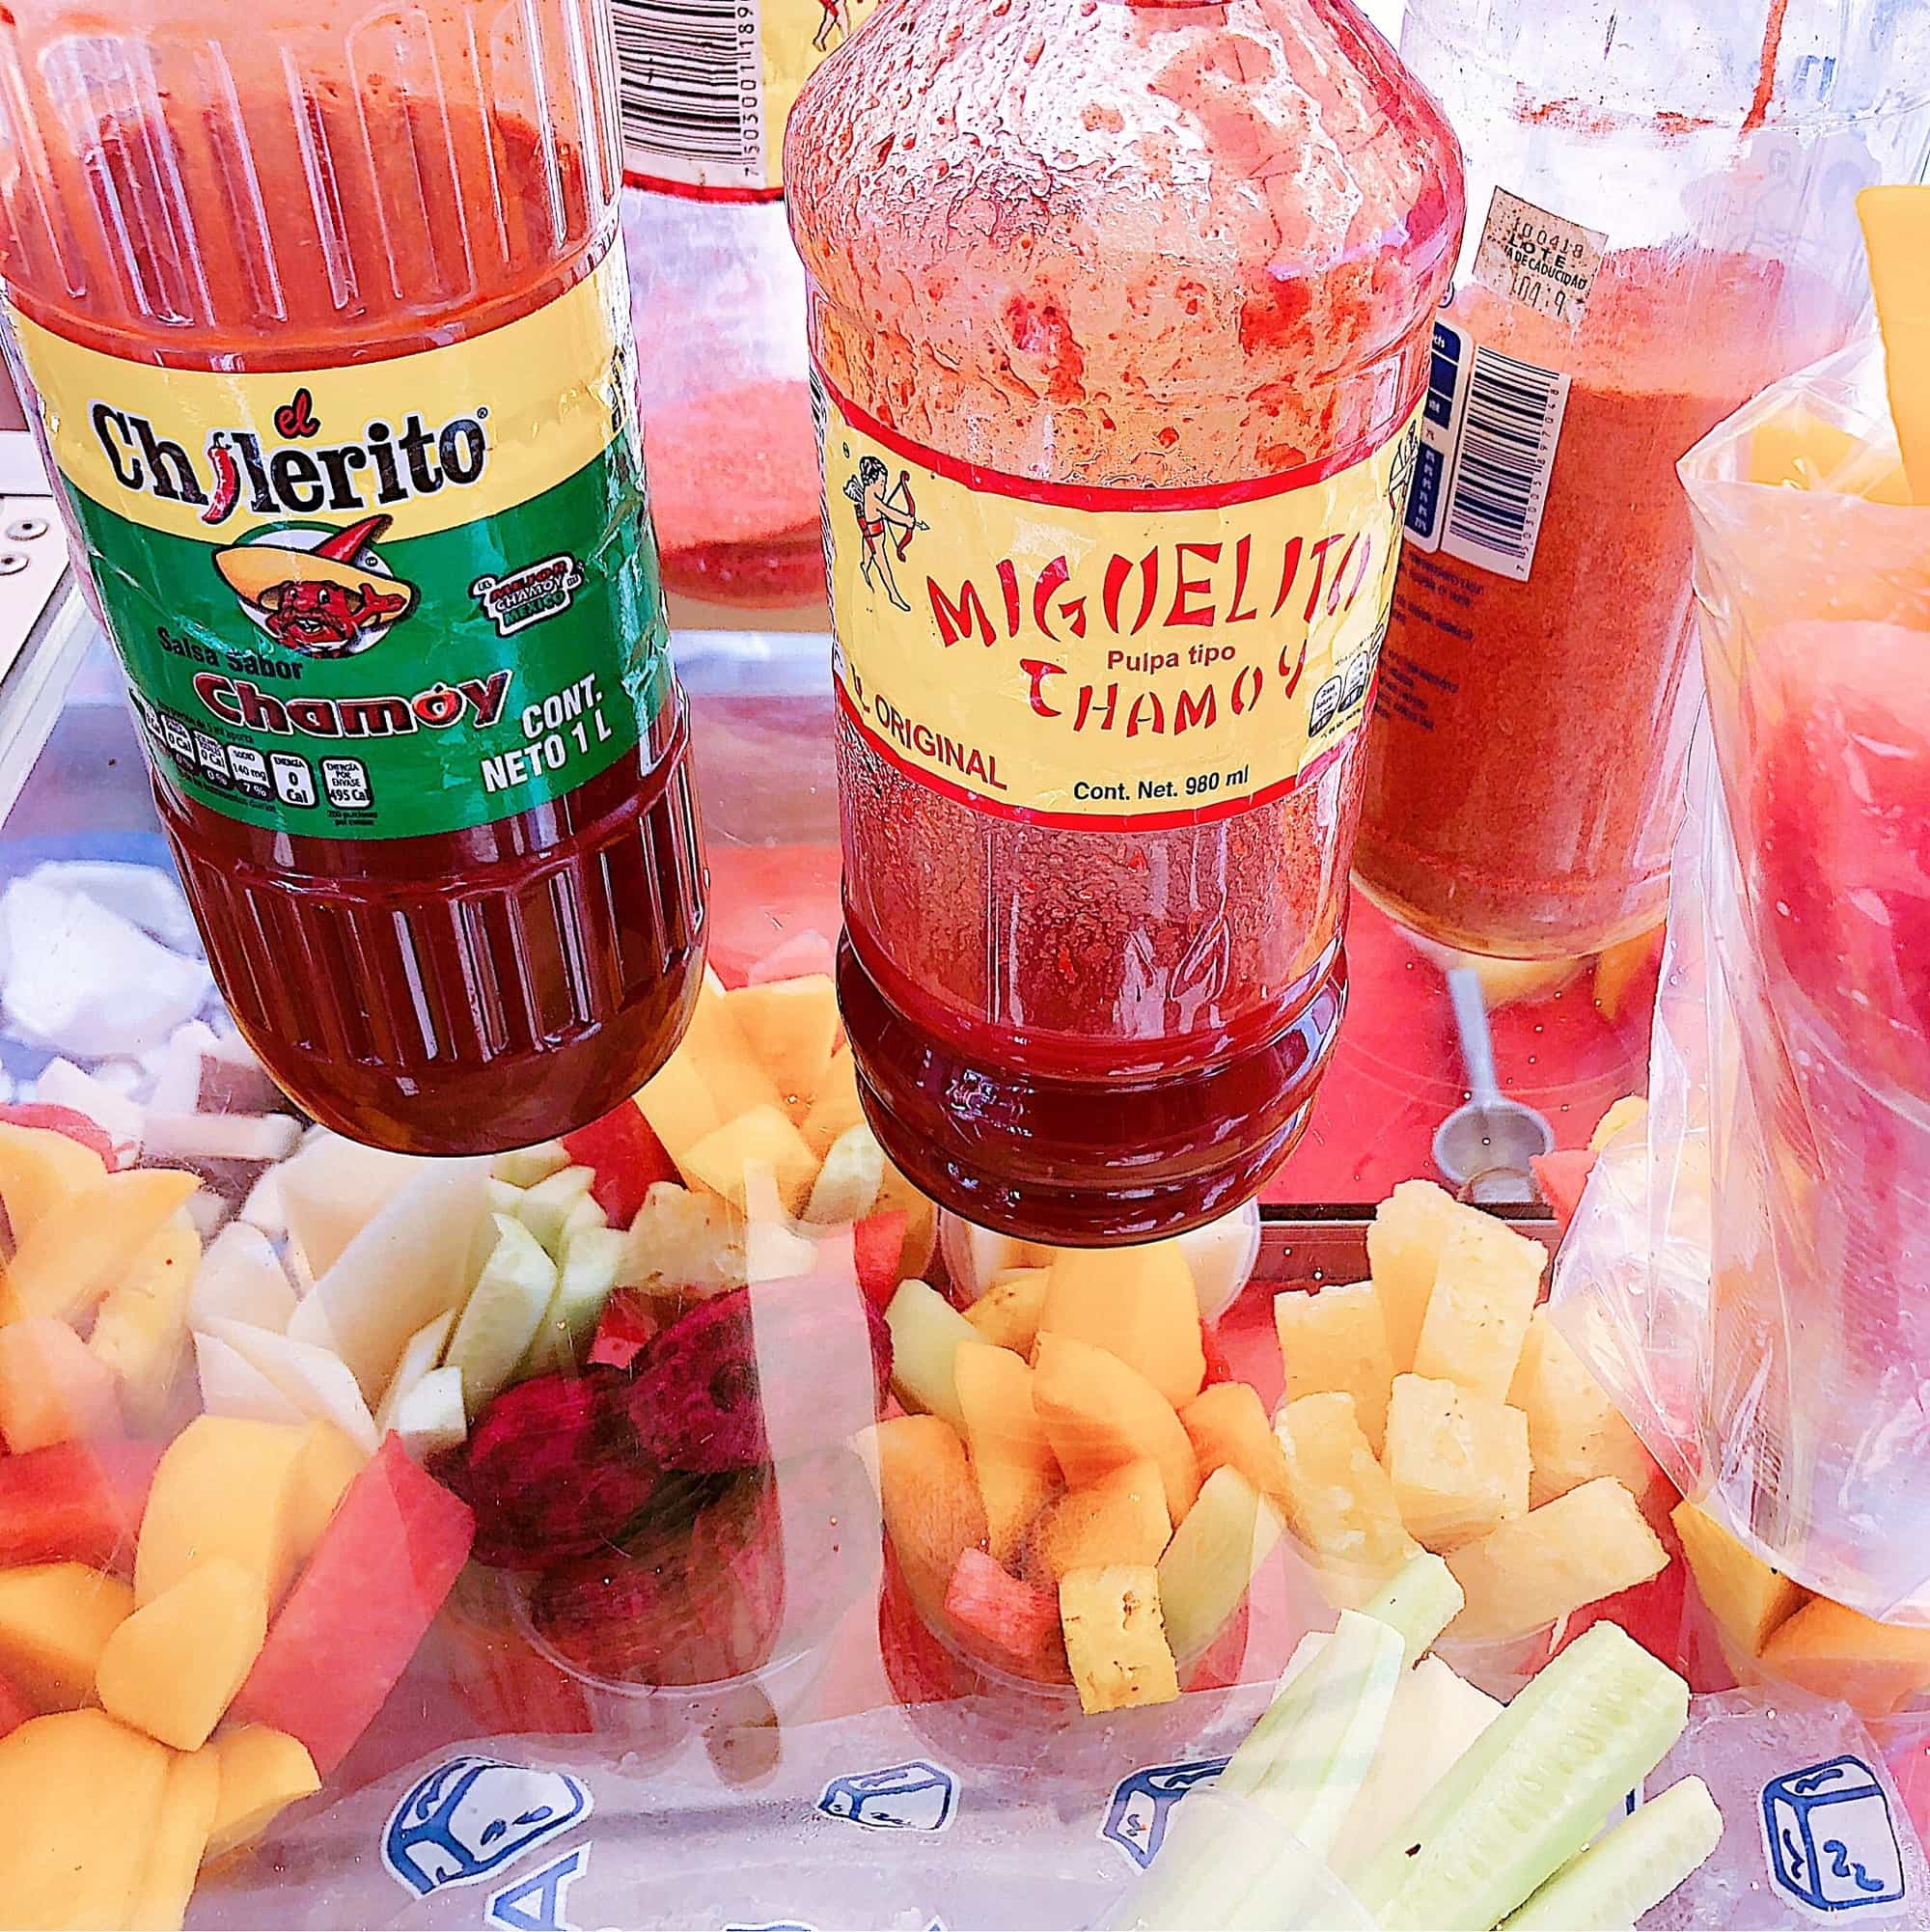 Purchase peeled fruits as a snack - hot sauce optional! ~ Where to Eat in San Miguel de Allende with Kids